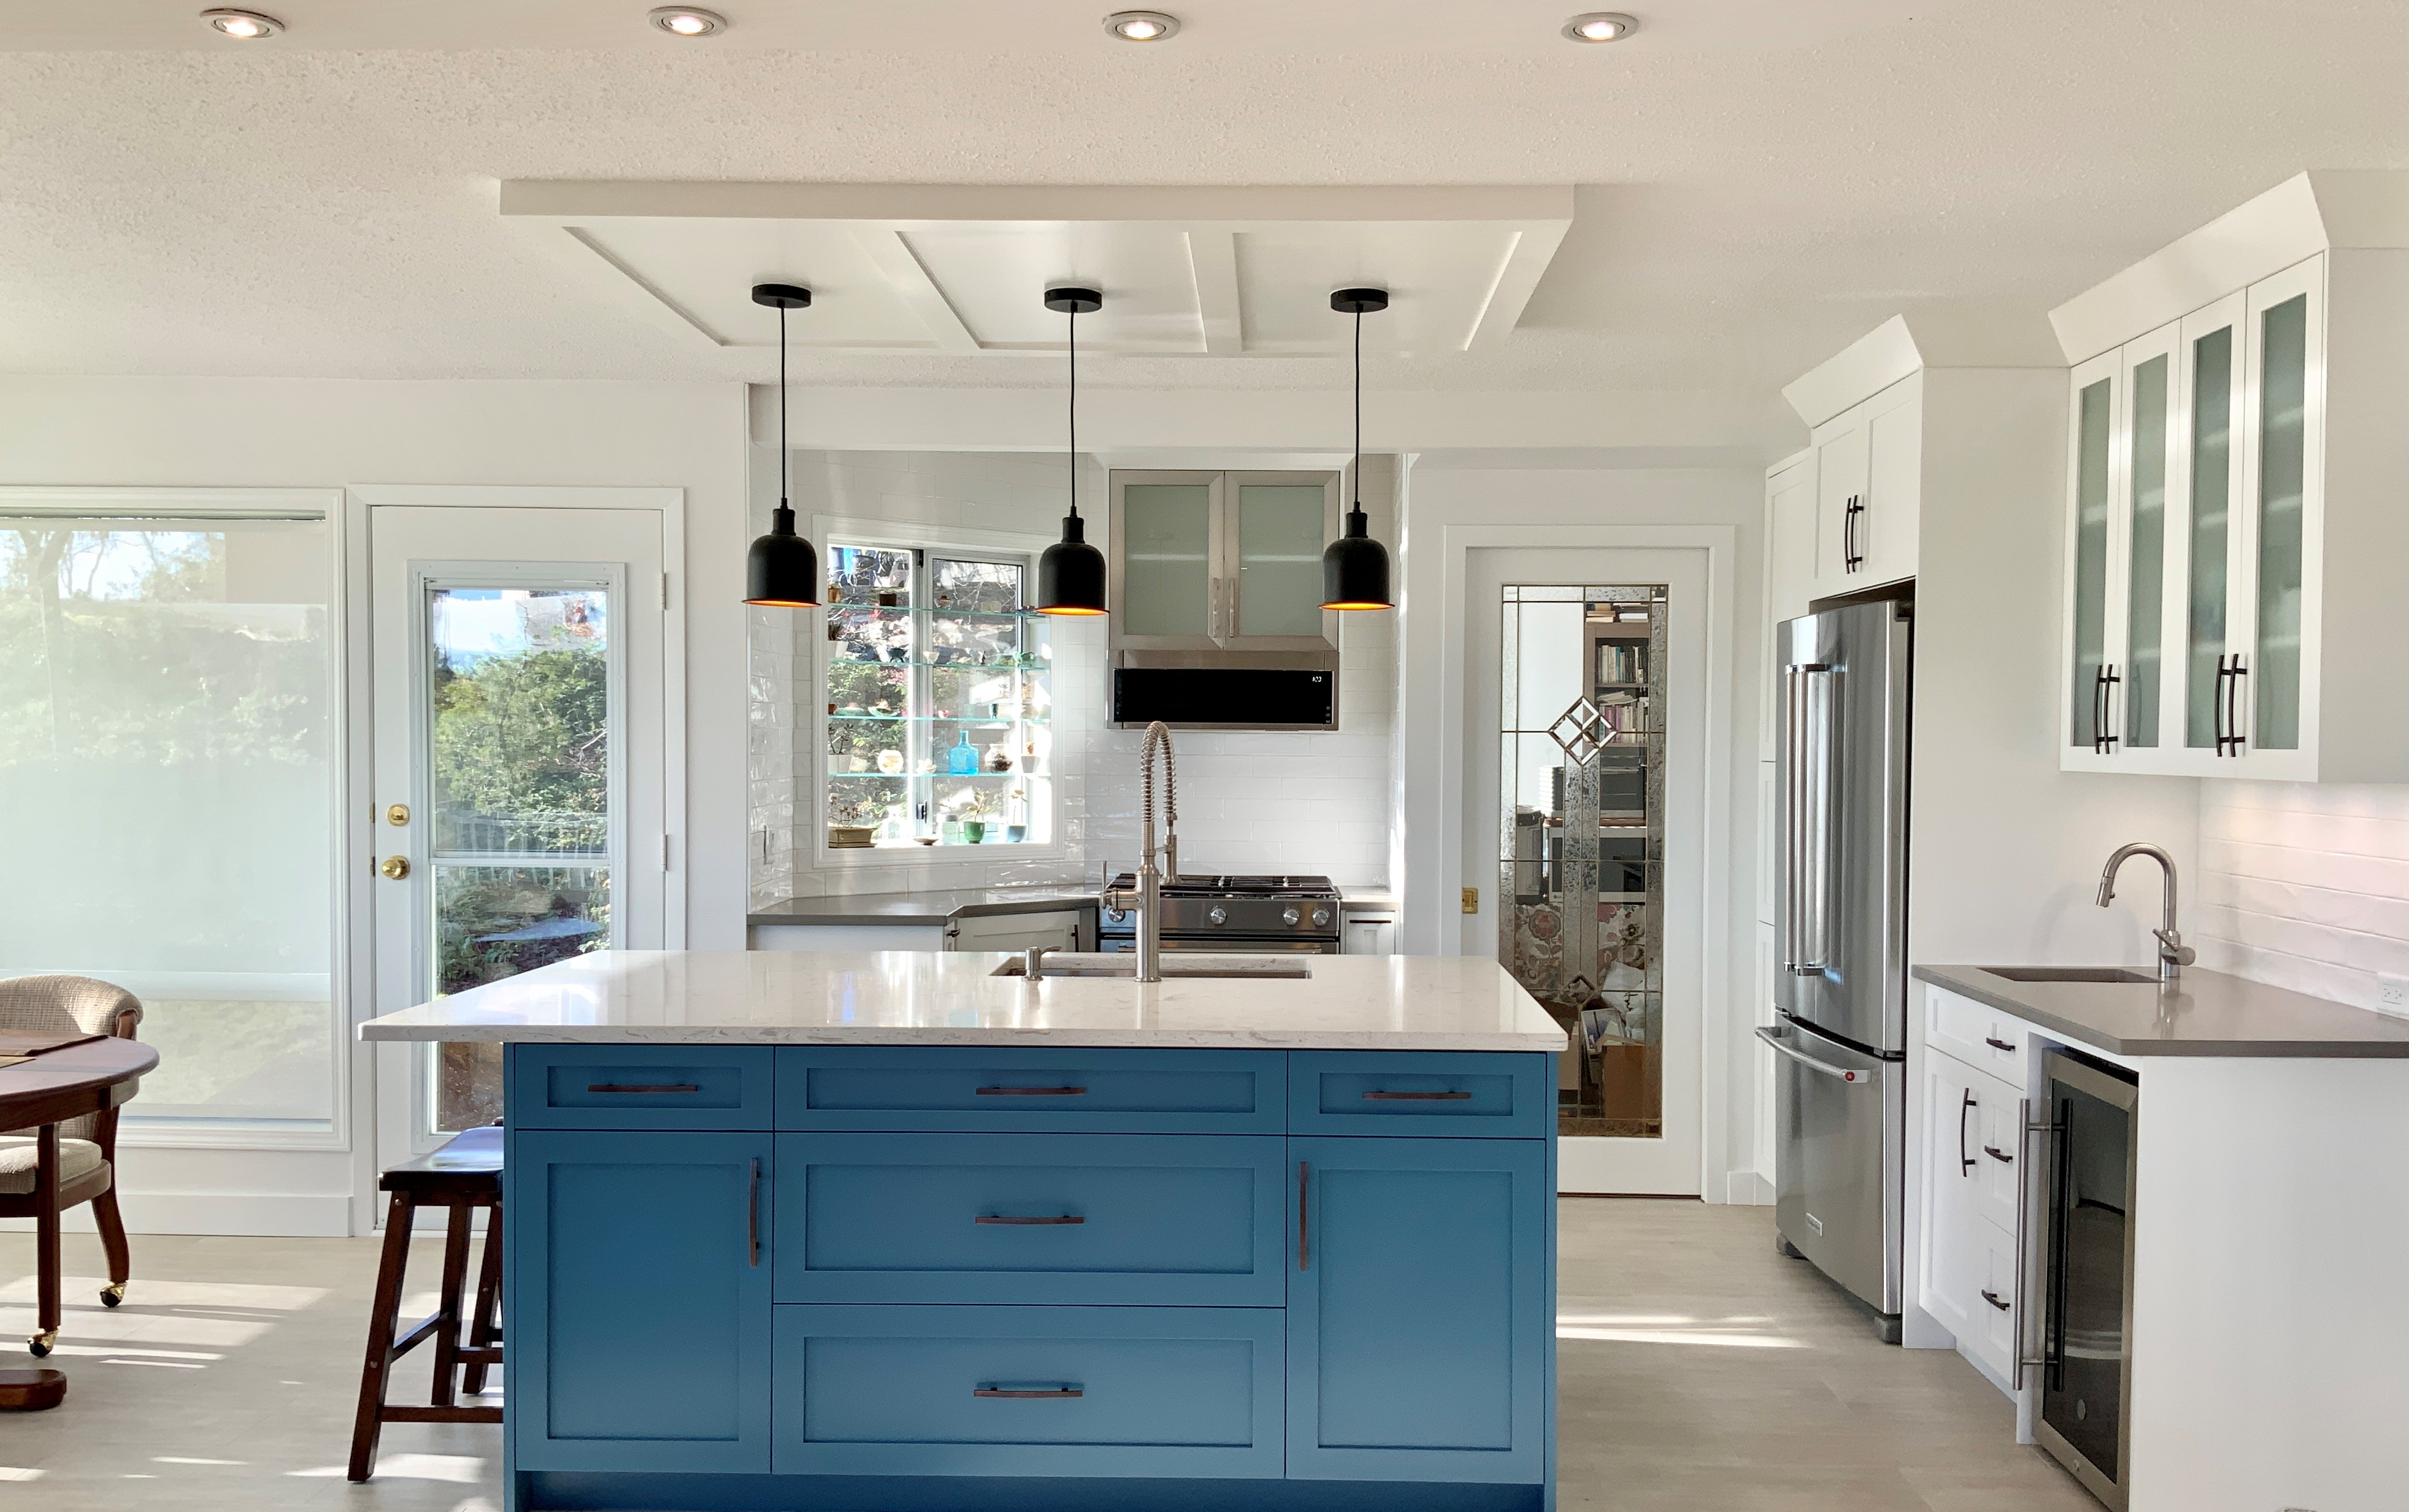 Comsense Kitchen Cabinets Home Nanaimo Kitchen Cabinets And Cabinet Refacing